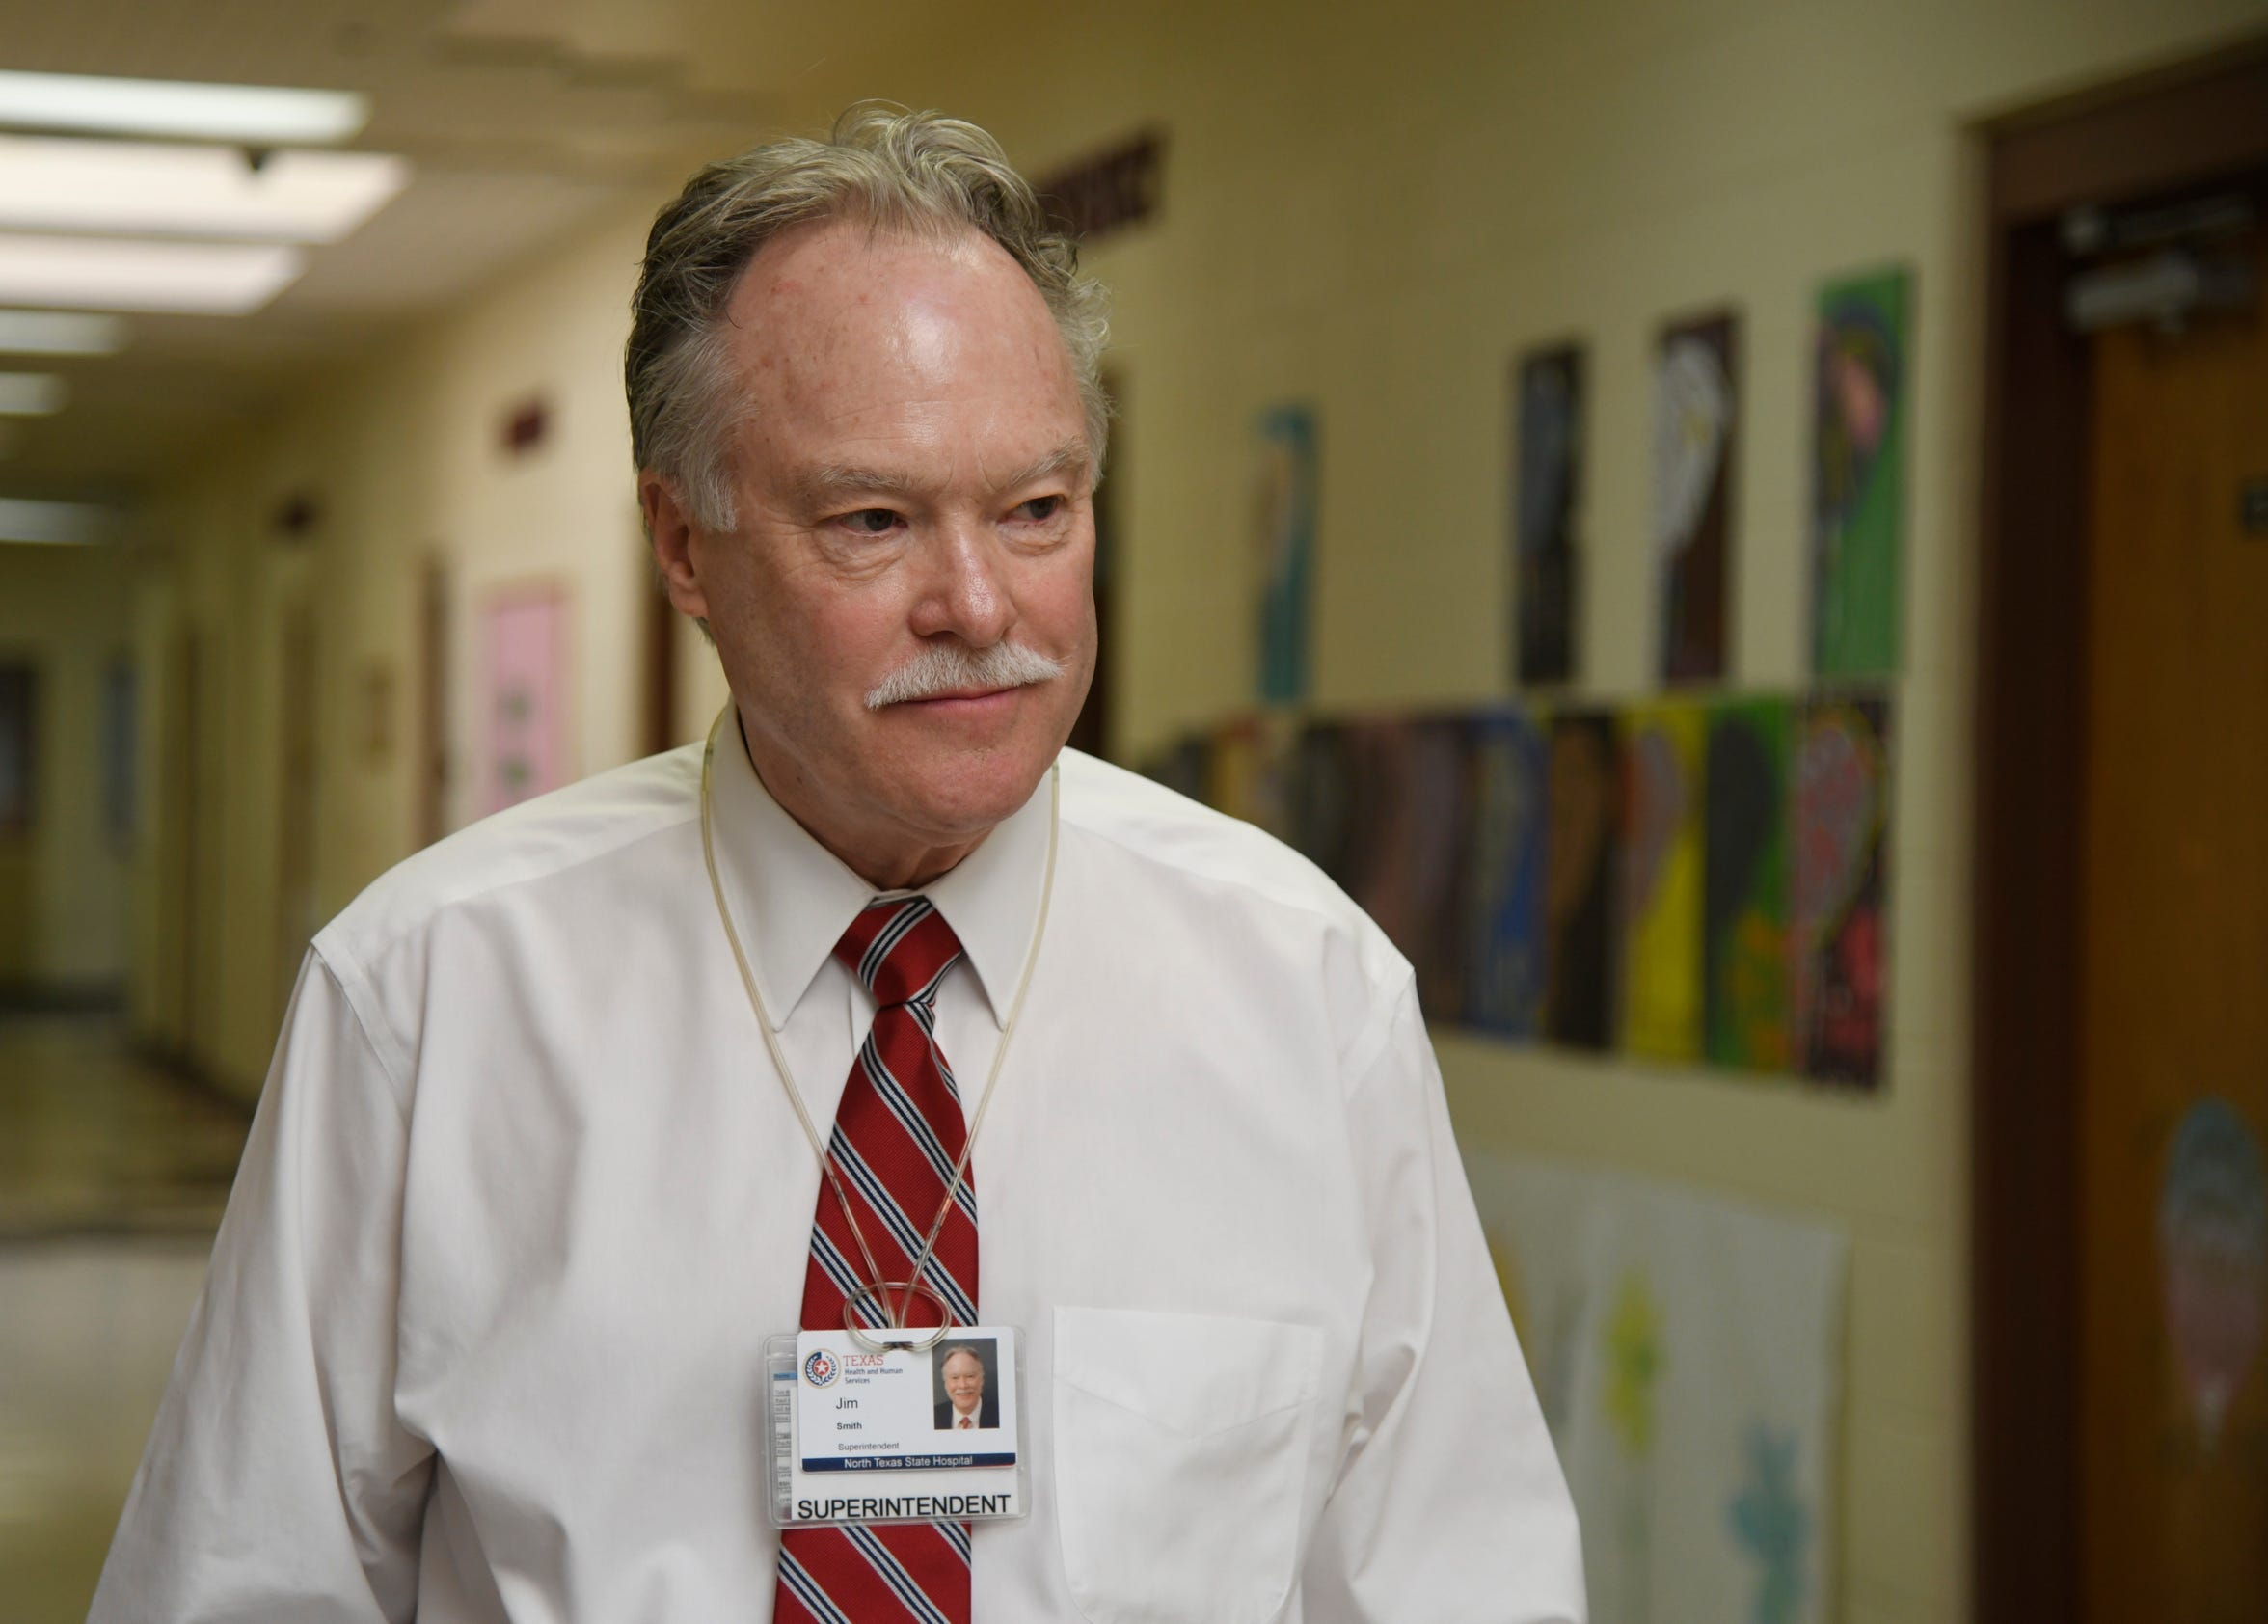 Superintendent Jim Smith gives a tour of the North Texas State Hospital, Monday, April 8, 2019, in Vernon, Texas.